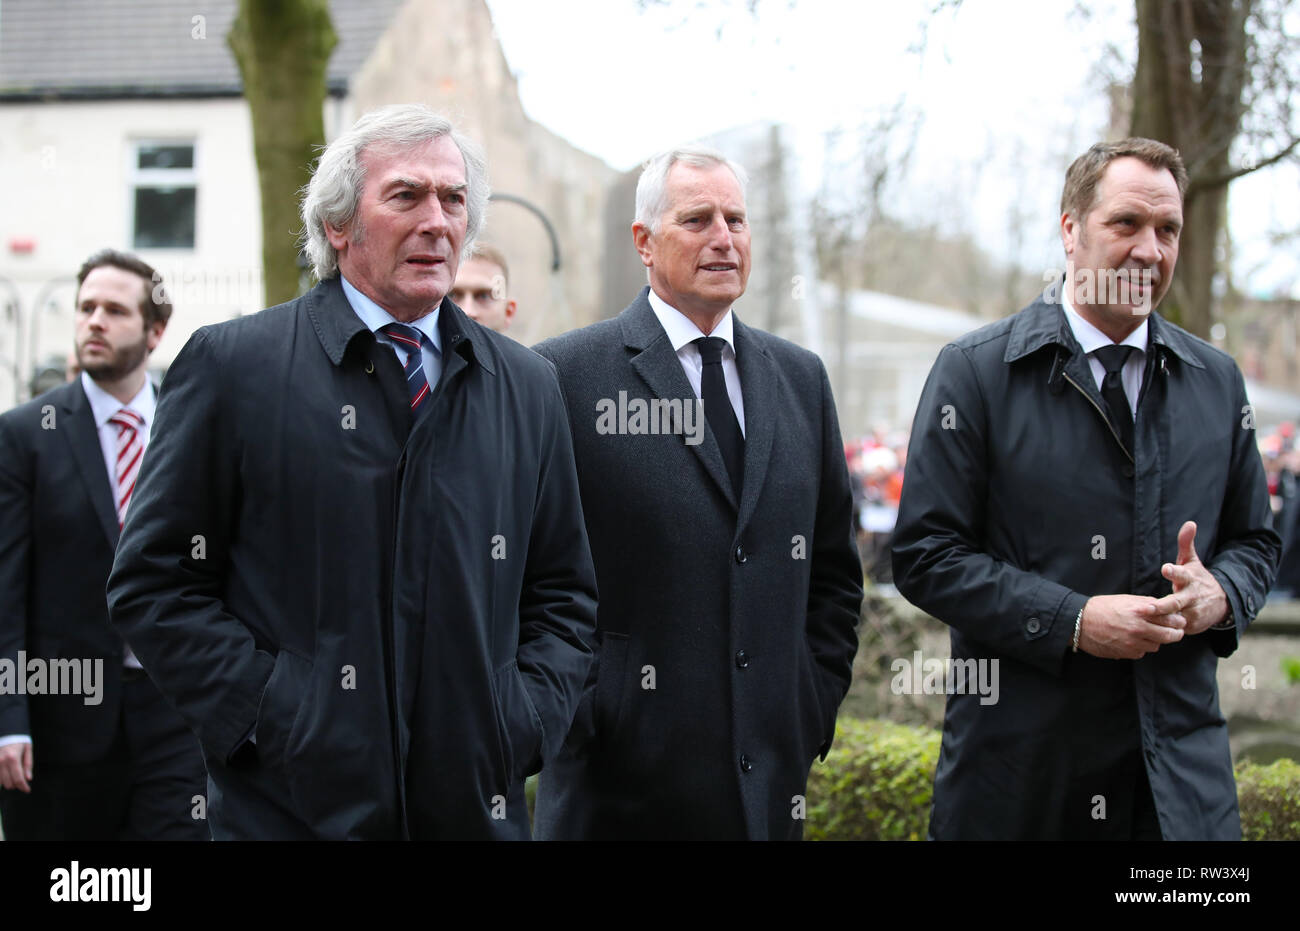 Retired goalkeepers (left to right) Pat Jennings, Ray Clemence and David Seaman at the funeral service for Gordon Banks at Stoke Minster. - Stock Image